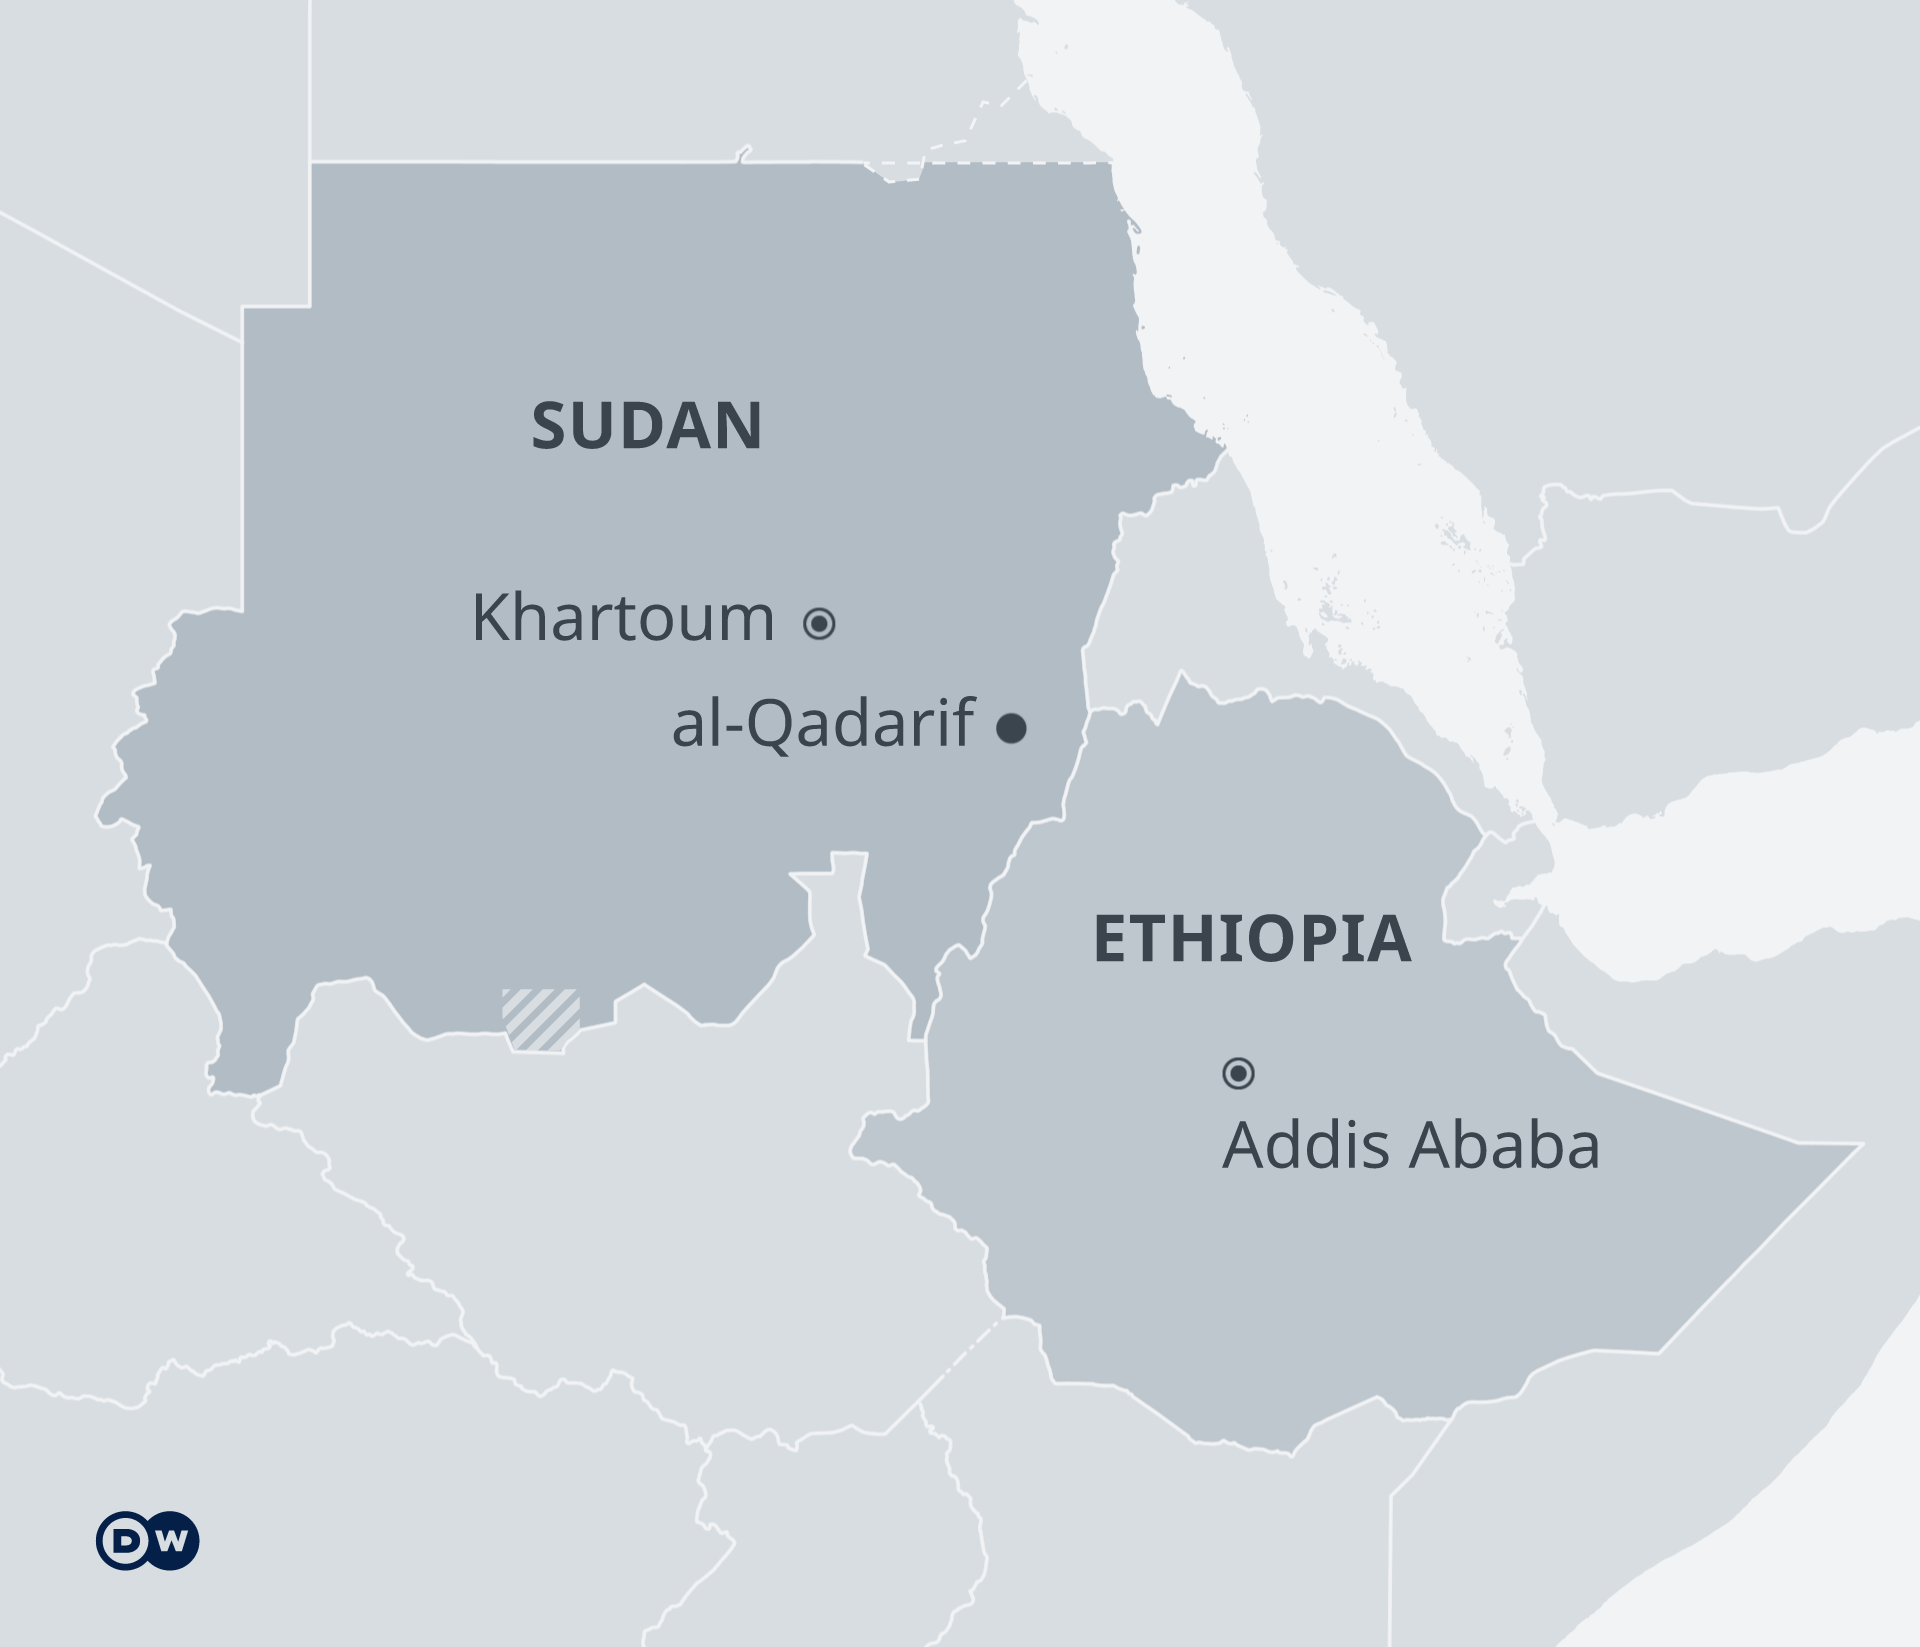 A map showing the border region between Sudan and Ethiopia